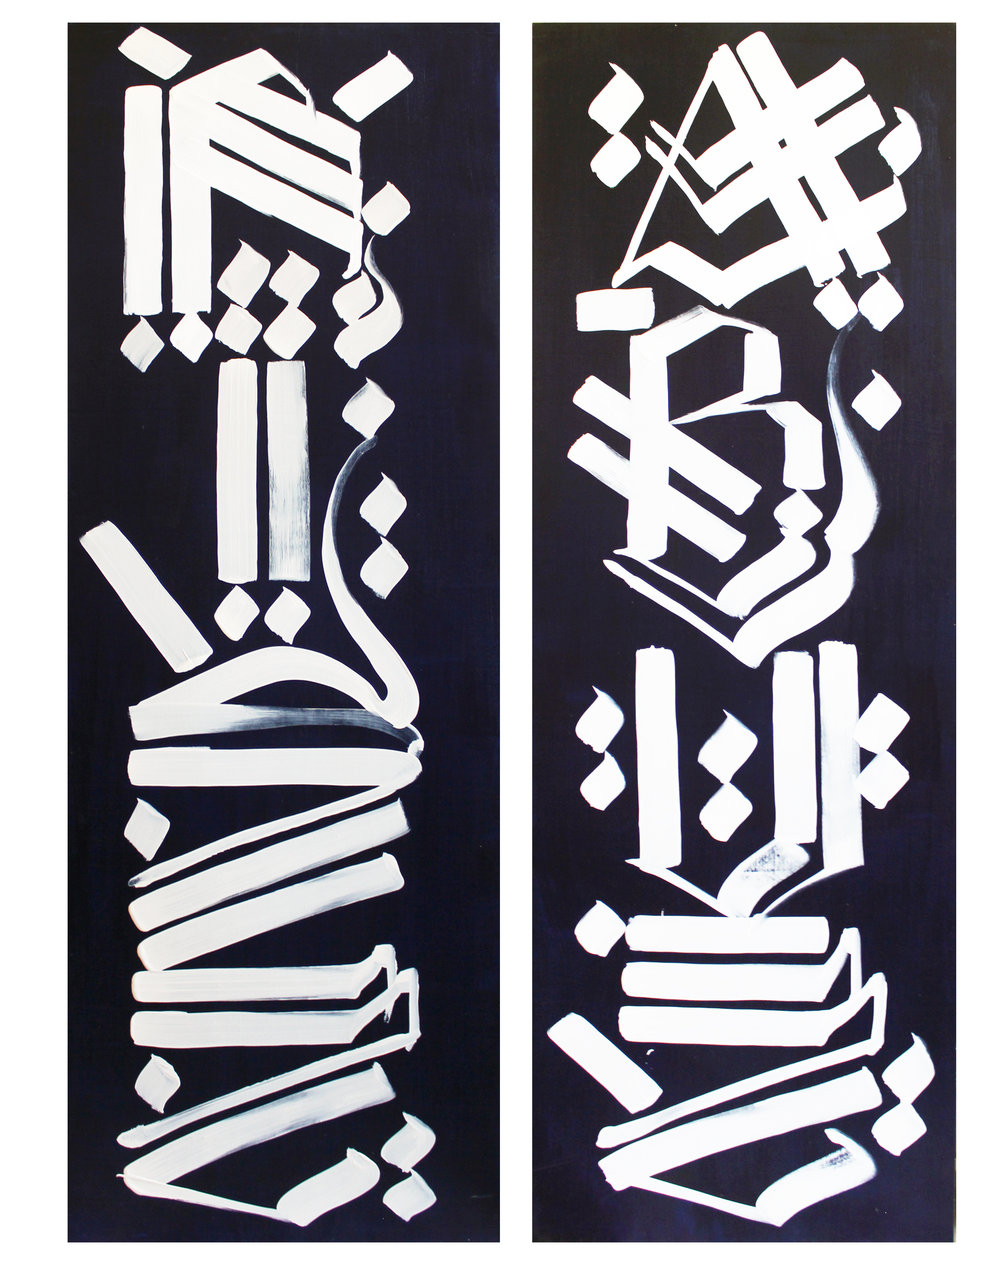 RETNA (Born 1979)   RISE ABOVE , 2008 Diptych acrylic on panel Each panel signed 2 x 6 feet, each; 4 x 6 feet overall Estimate: $15,000/$20,000